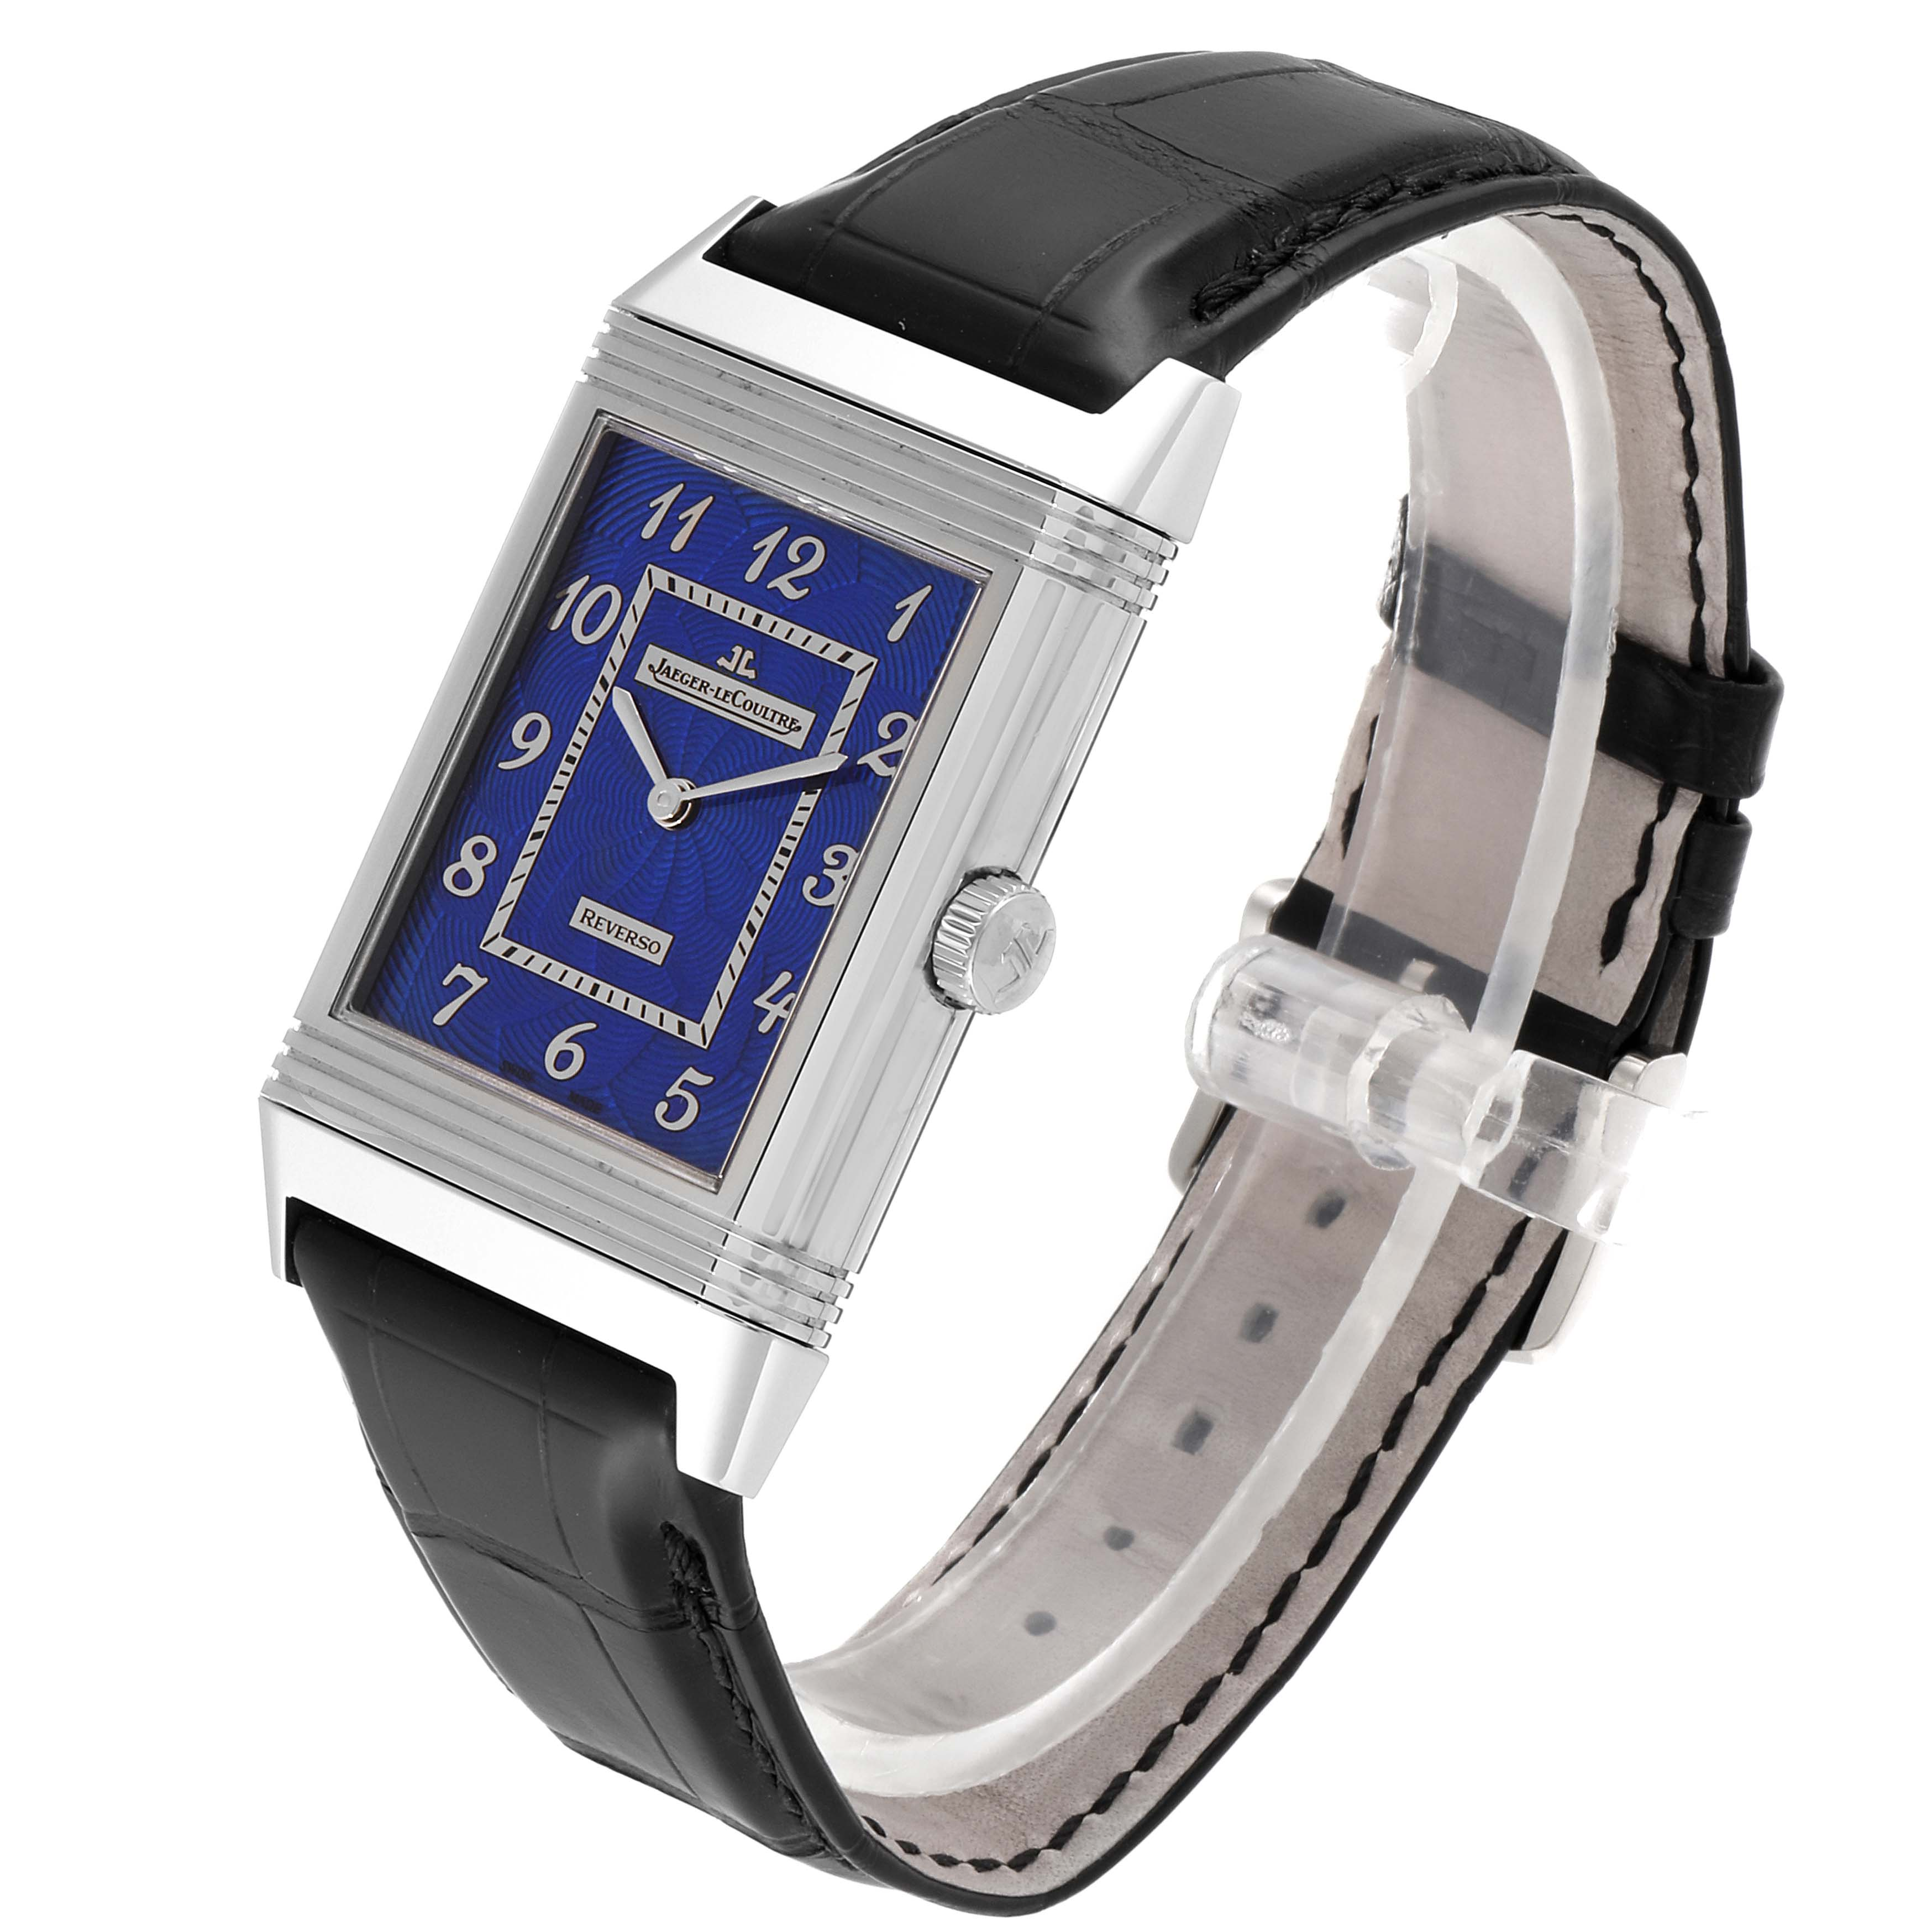 Jaeger LeCoultre Grande Reverso White Gold Limited Watch 273.3.62 Box Card SwissWatchExpo